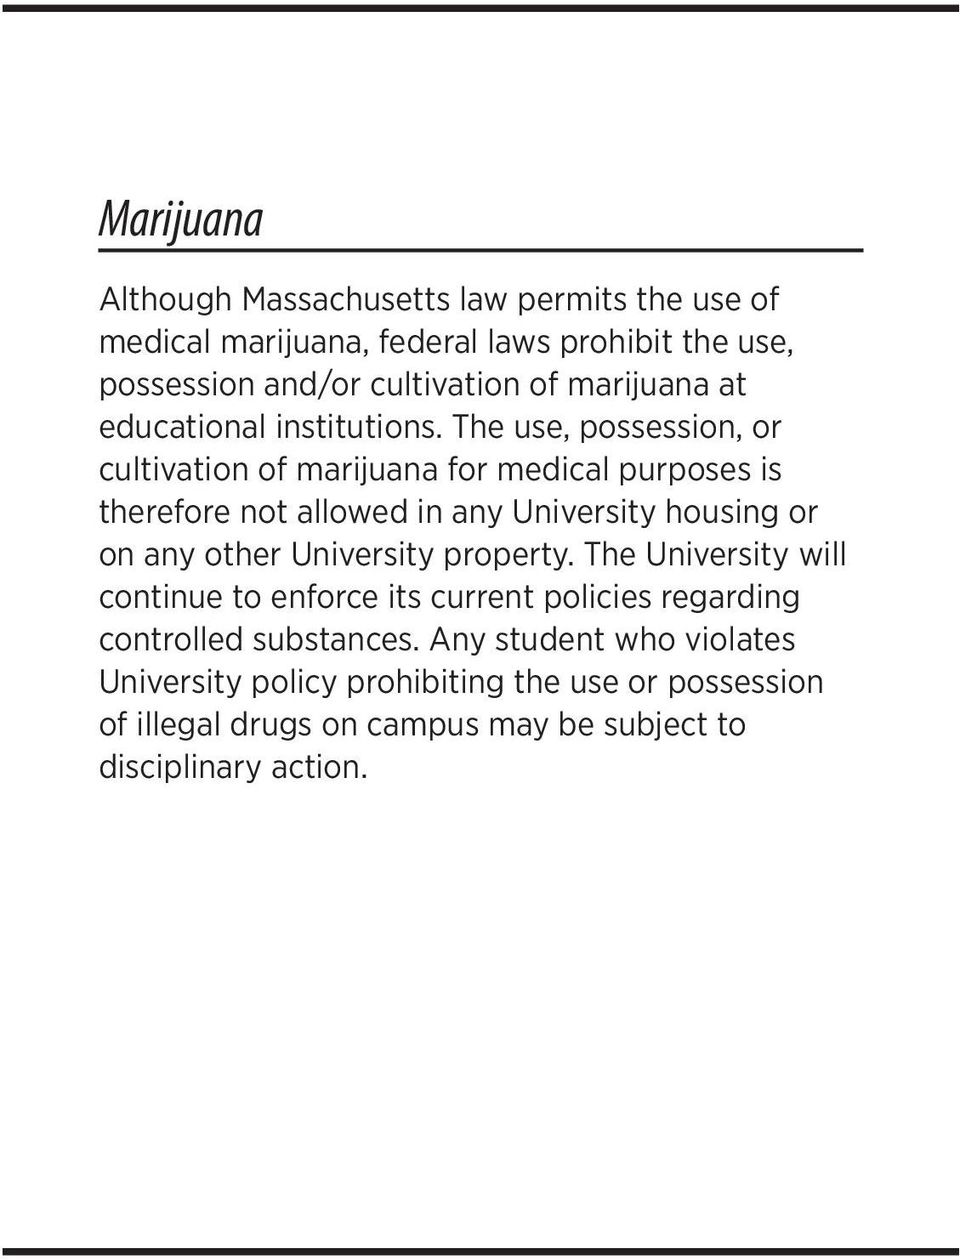 The use, possession, or cultivation of marijuana for medical purposes is therefore not allowed in any University housing or on any other